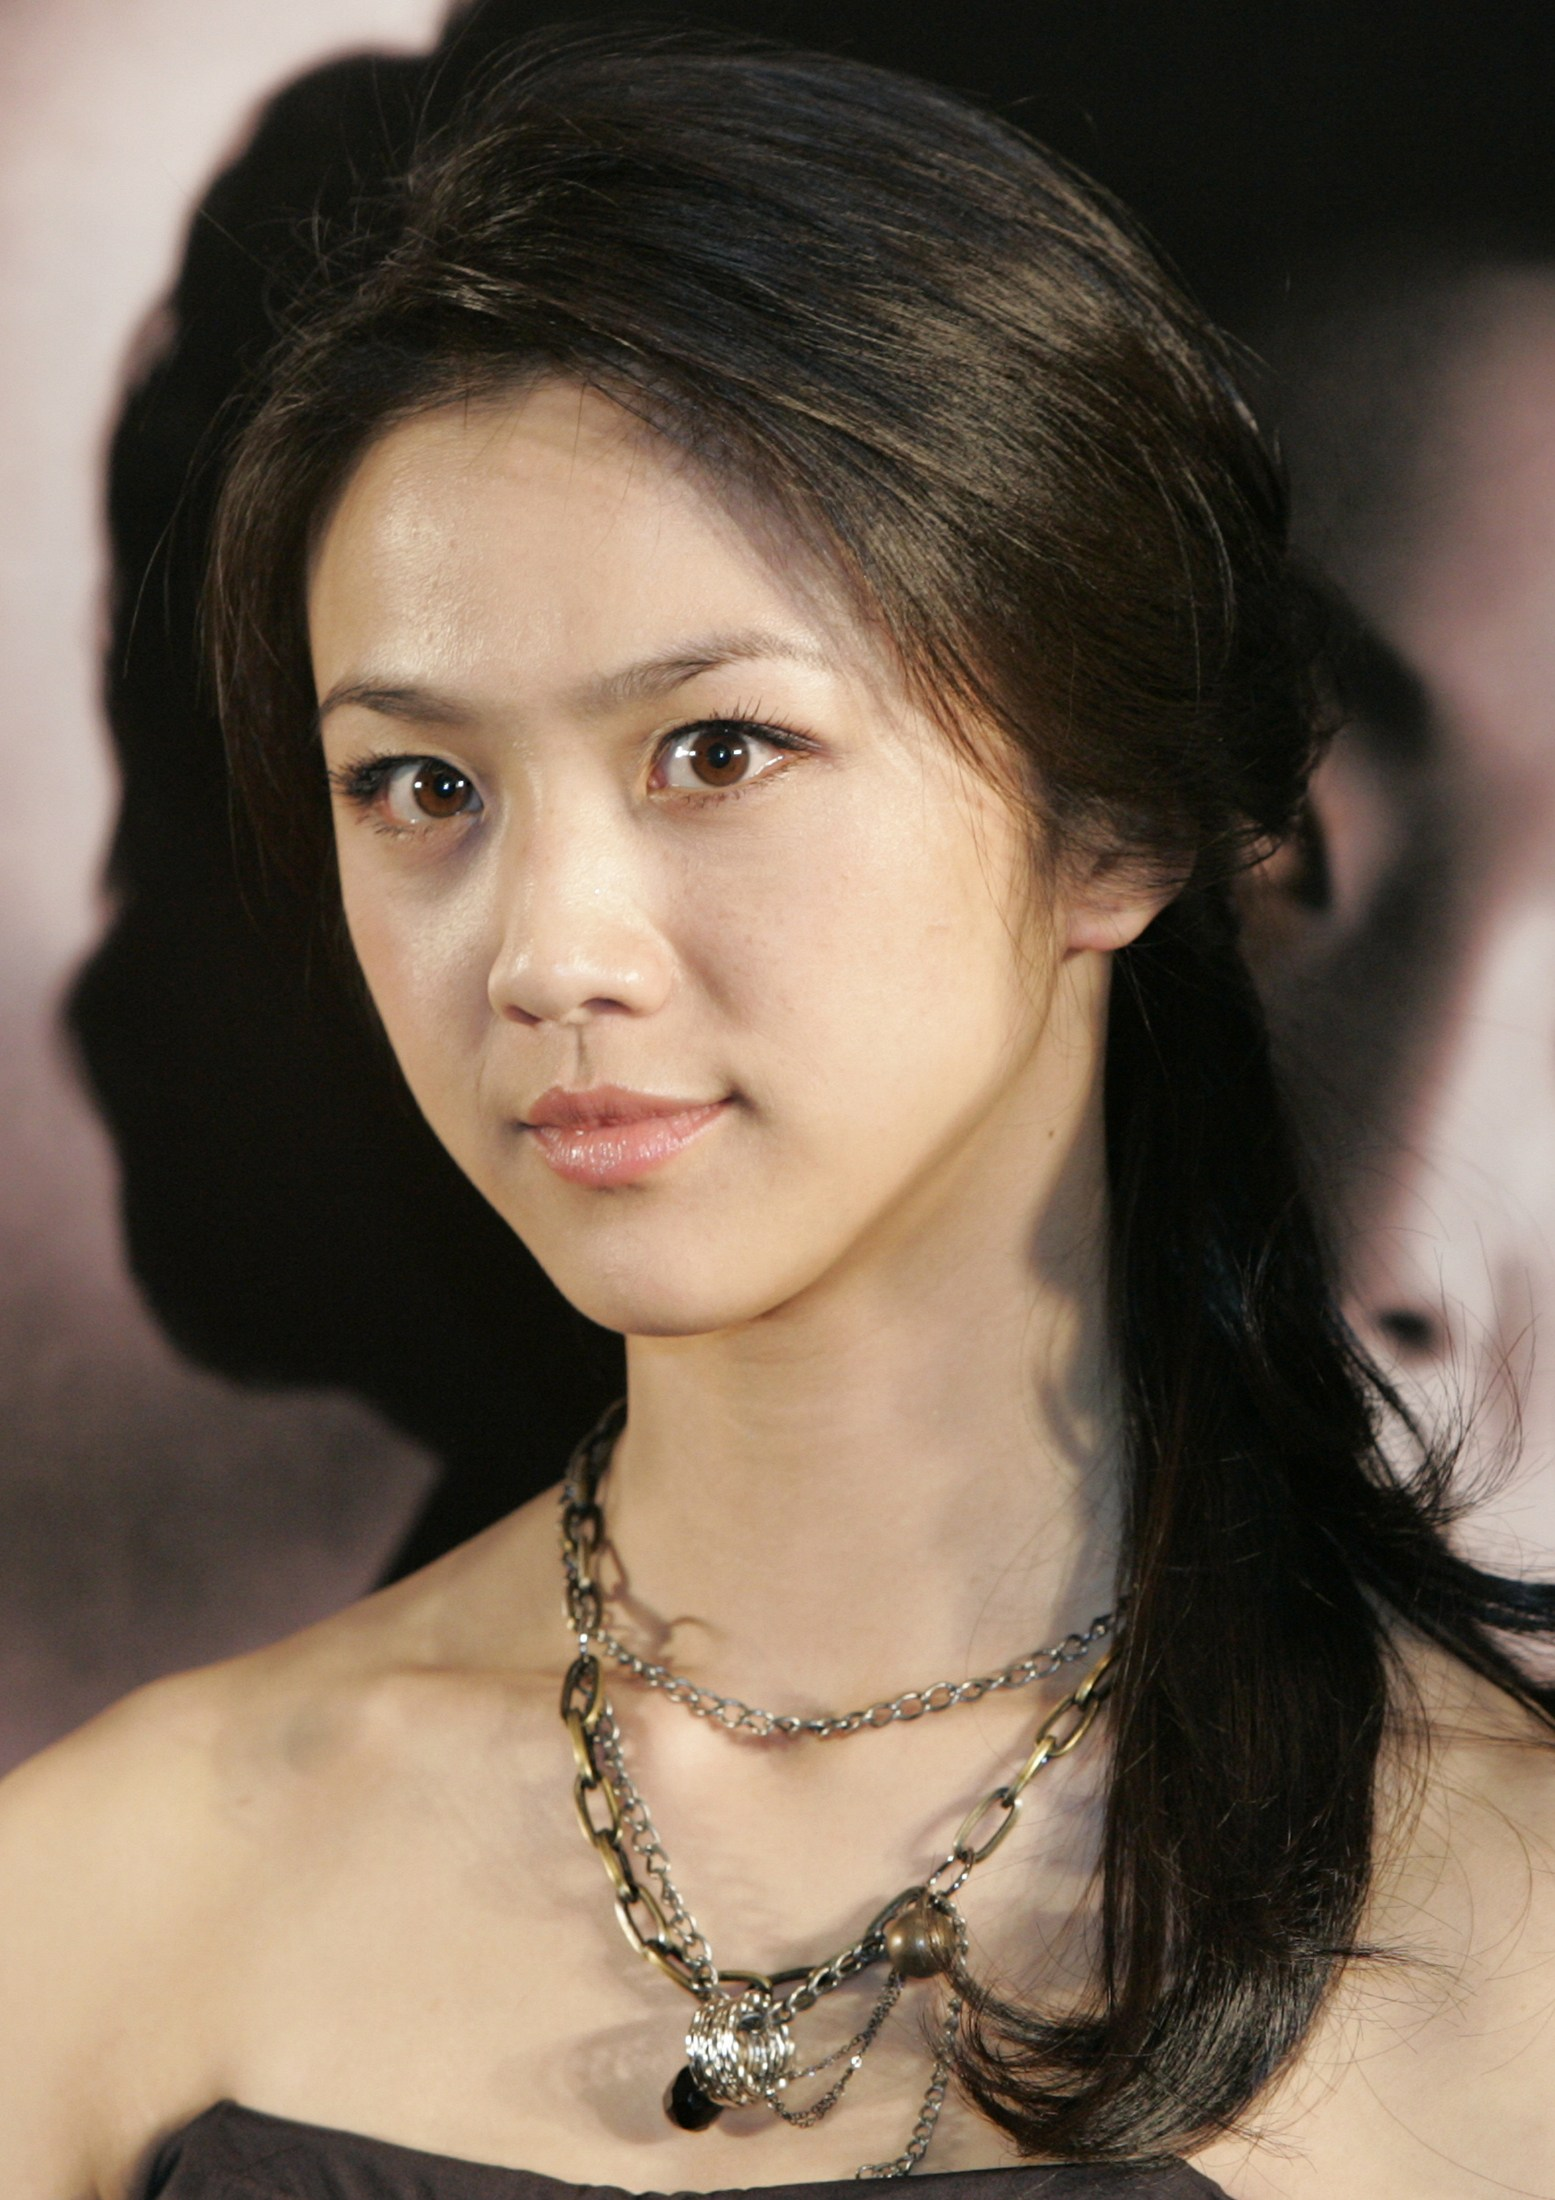 Chinese Actress Tang Wei Attends A Japan Premiere Event Of Lust Caution In Tokyo January 24 2008 The Film Opens February 2 Agencies